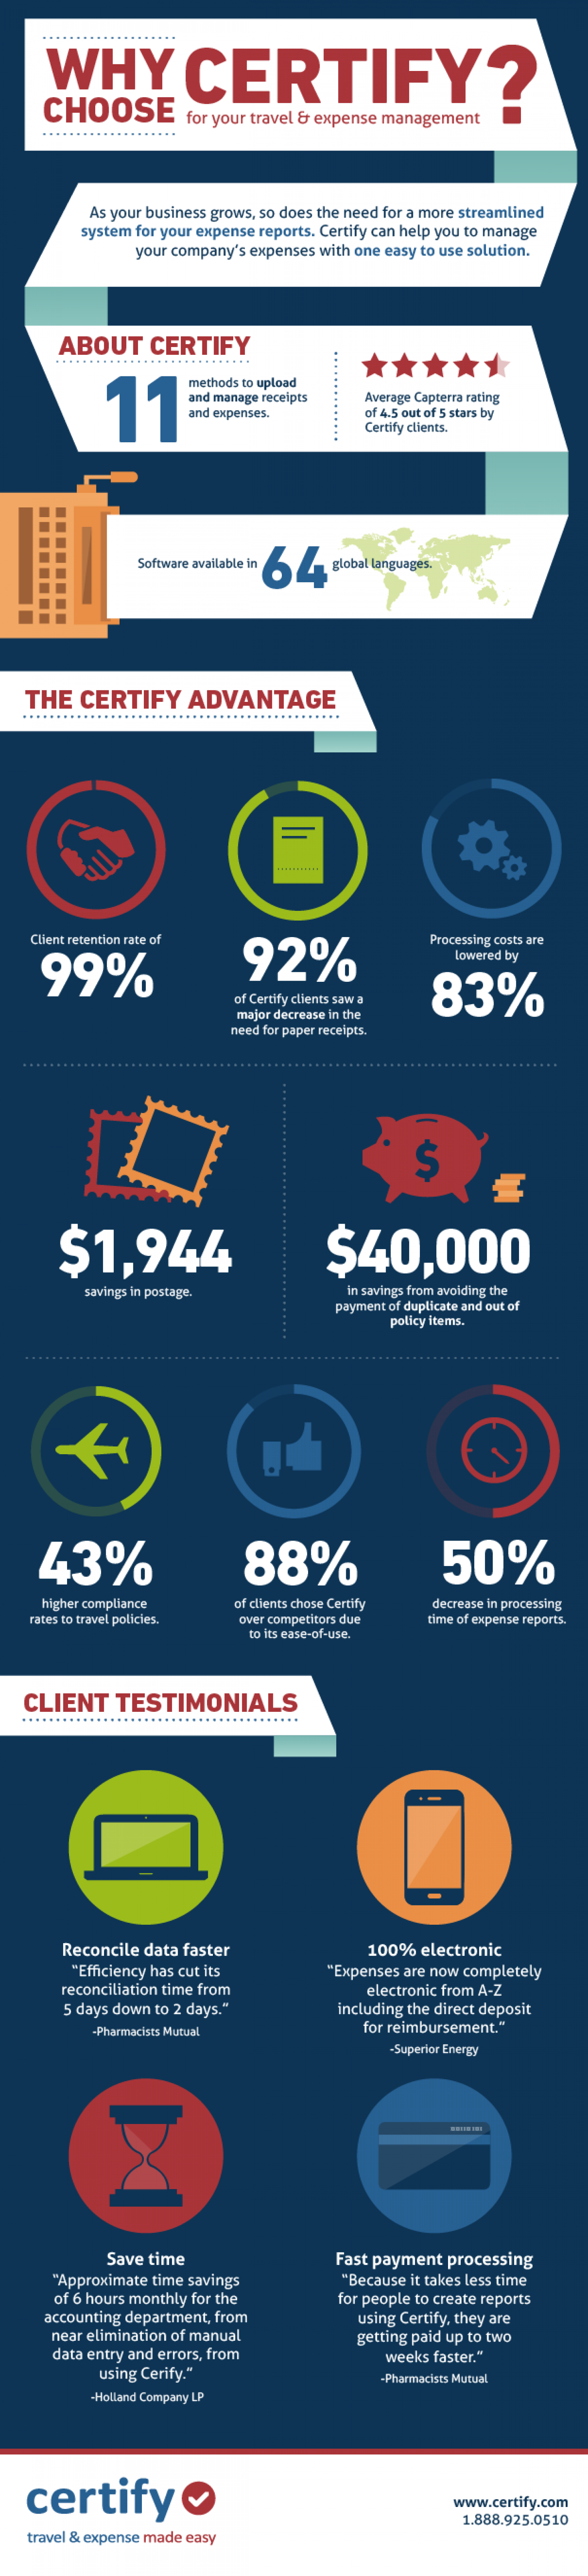 Why Choose Certify for Your Travel and Expense Management Infographic